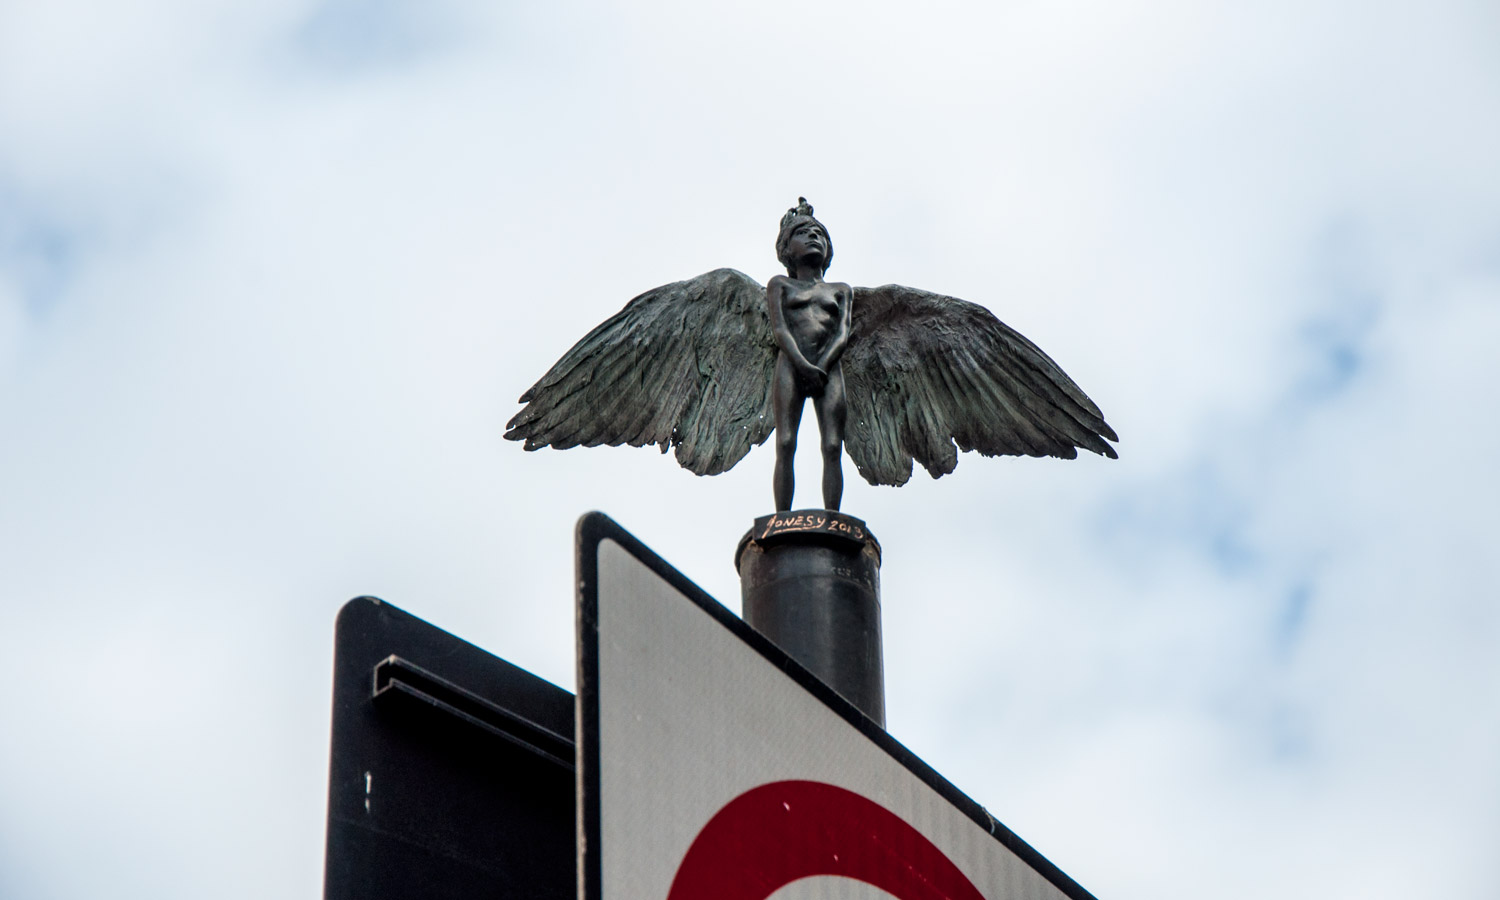 'Angel' sculpture by Jonesy